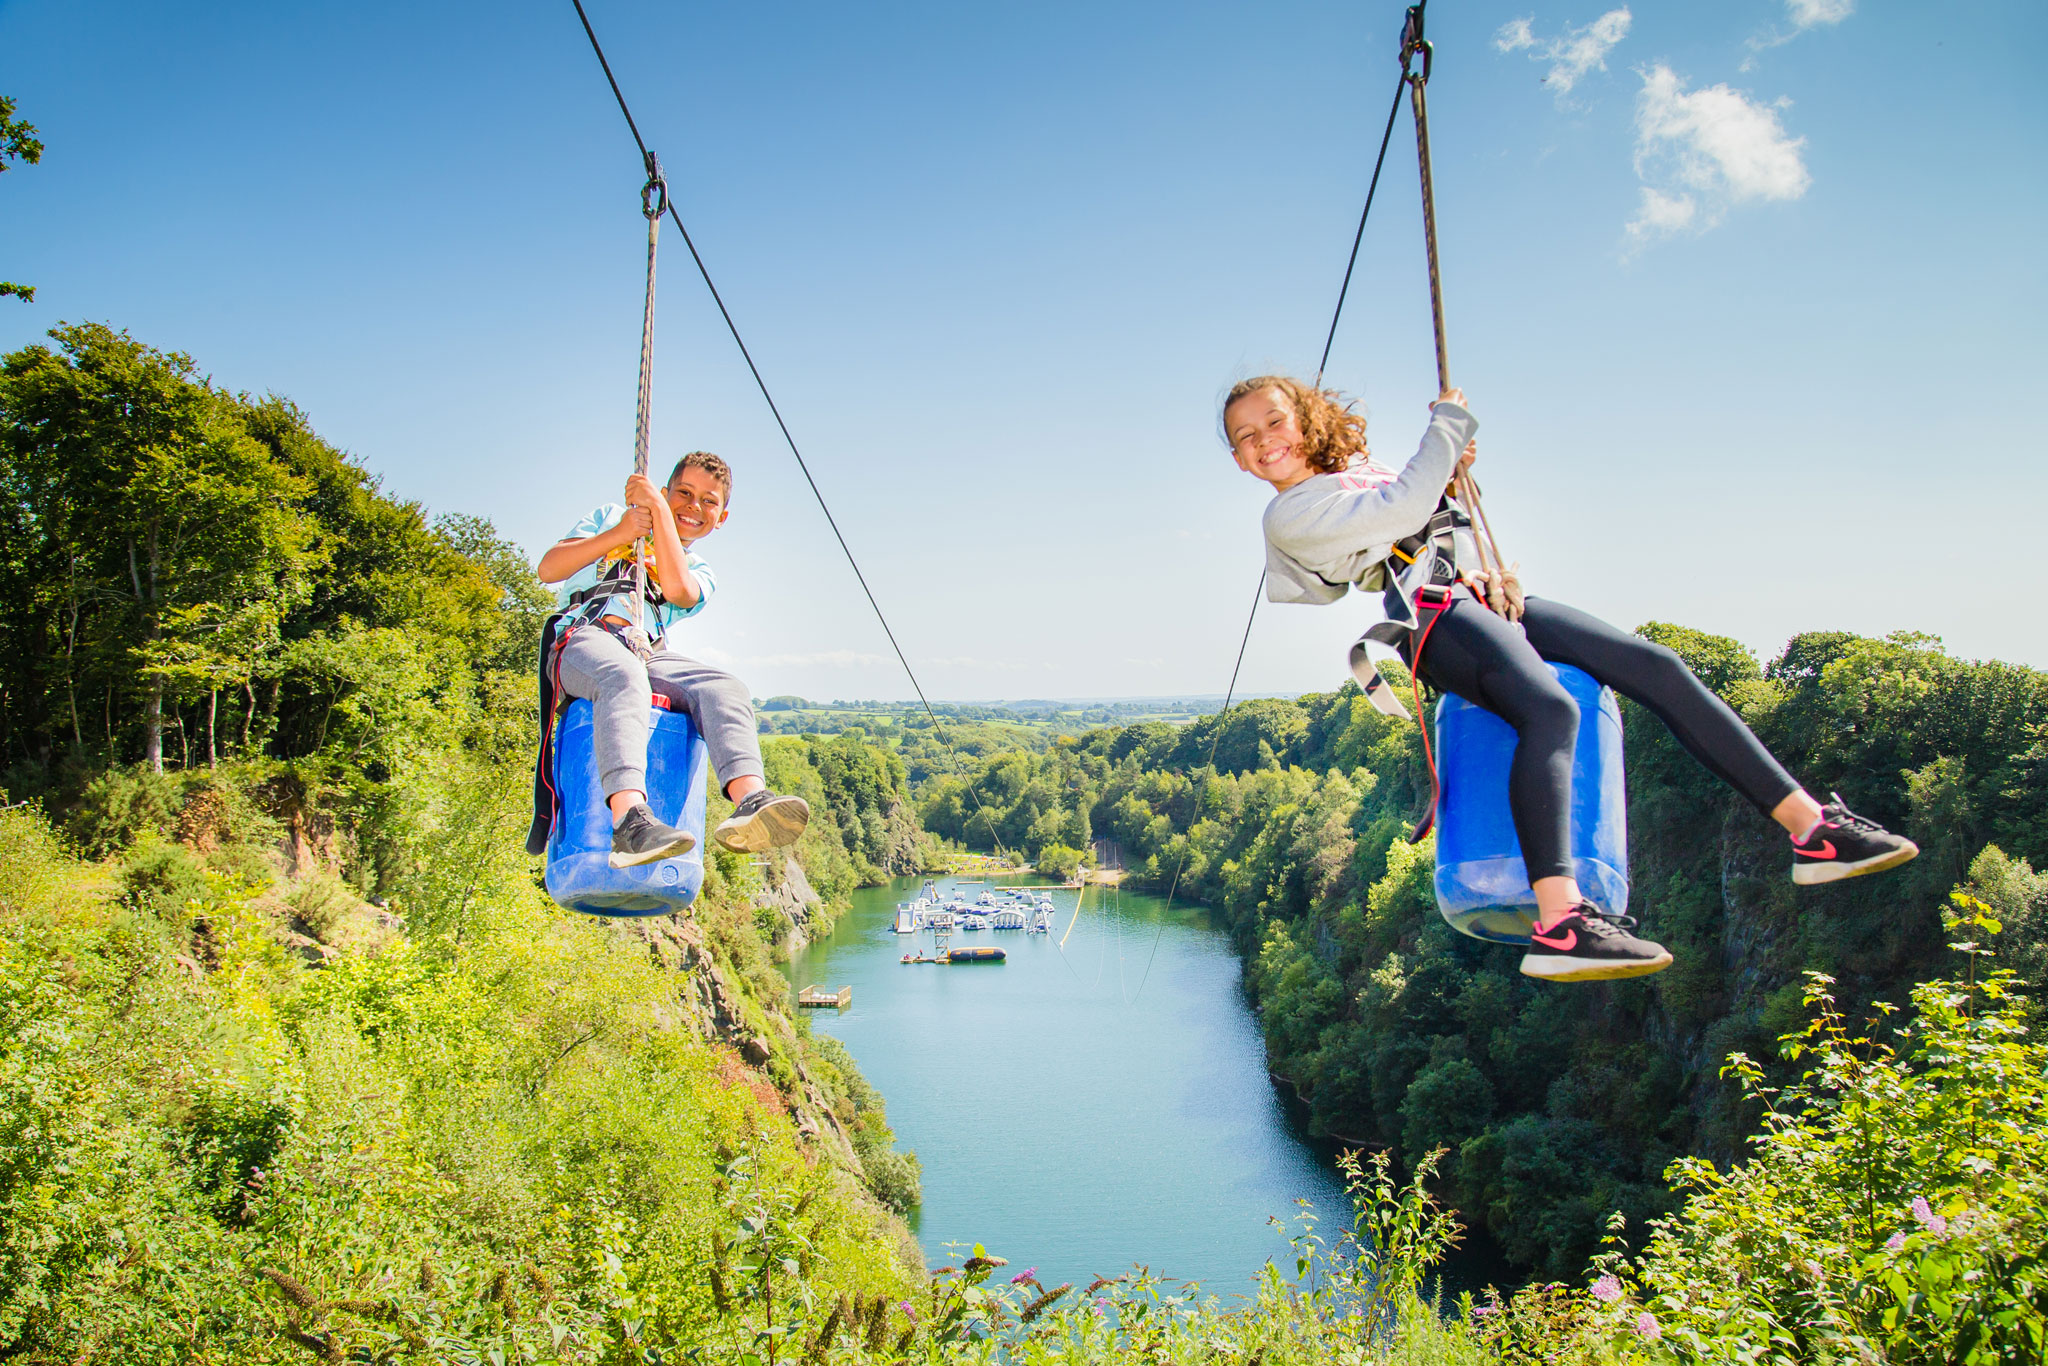 wheelchair zip wire office chair mat bamboo things to do in cornwall 490m adrenalin quarry book coasteering